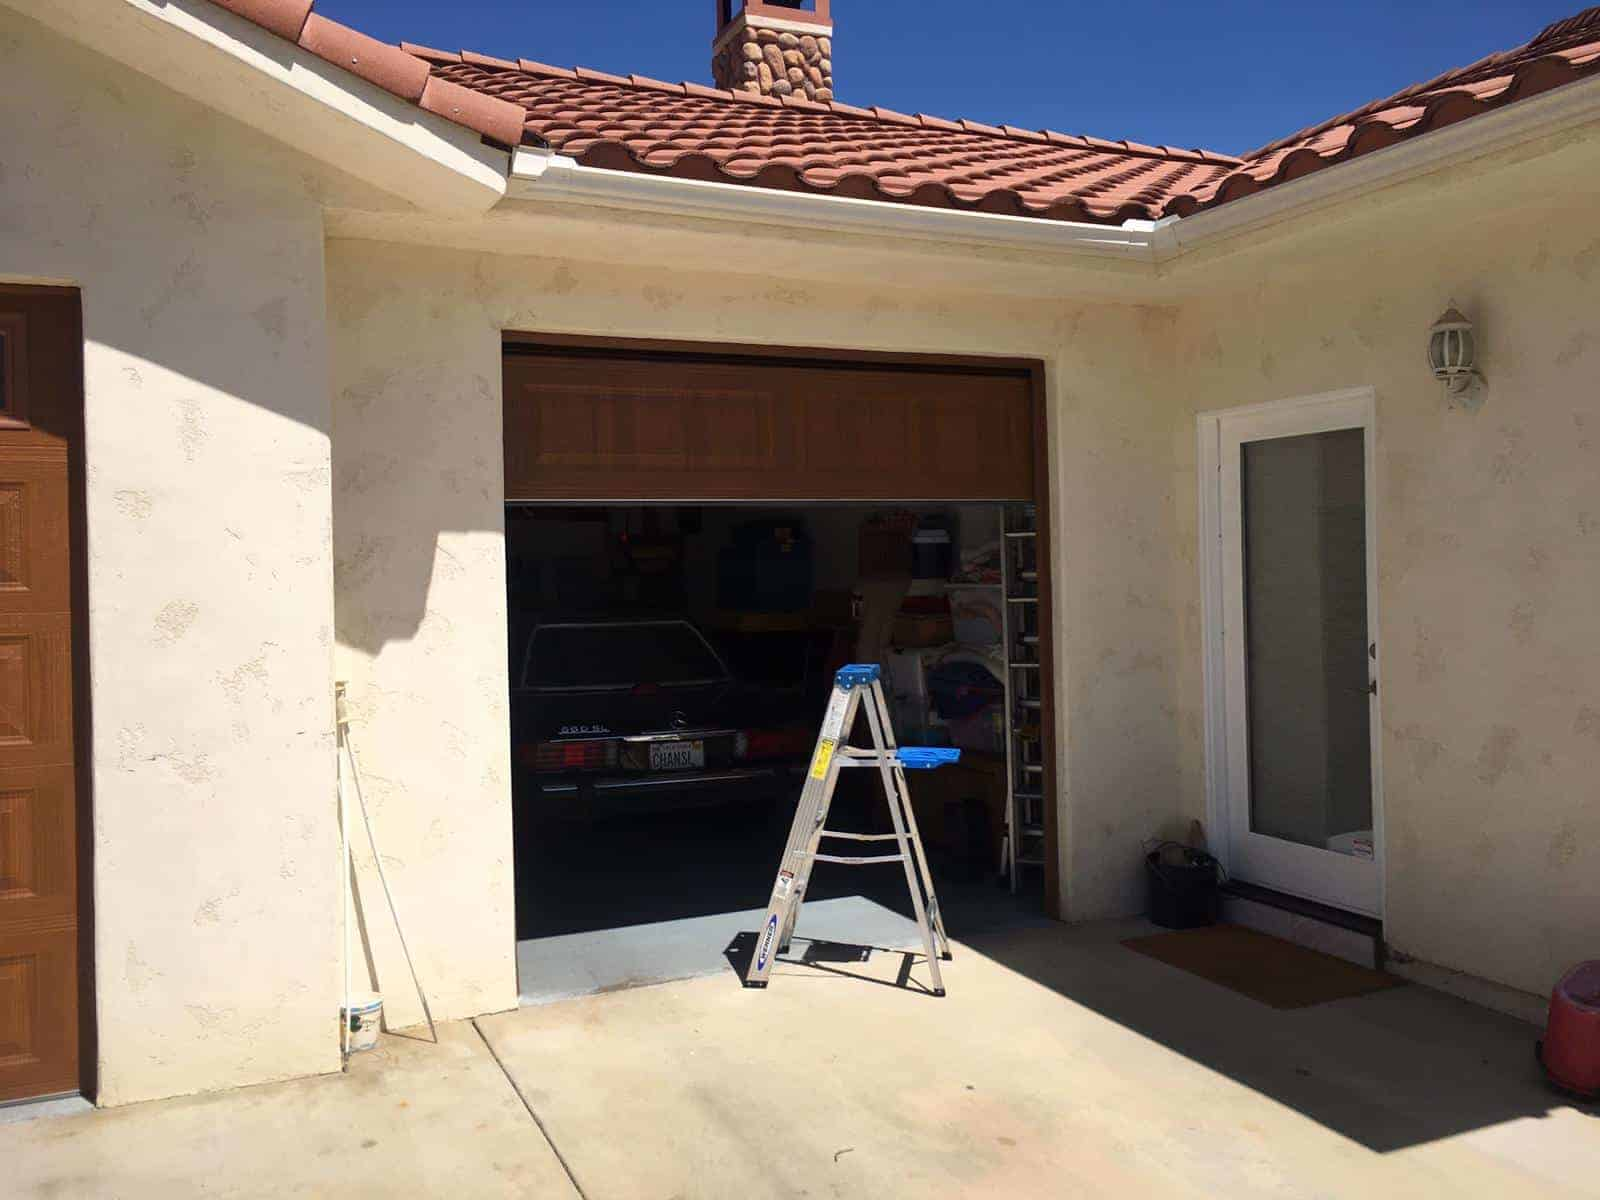 Cottonwood Heights Gate and Garage Door Repair